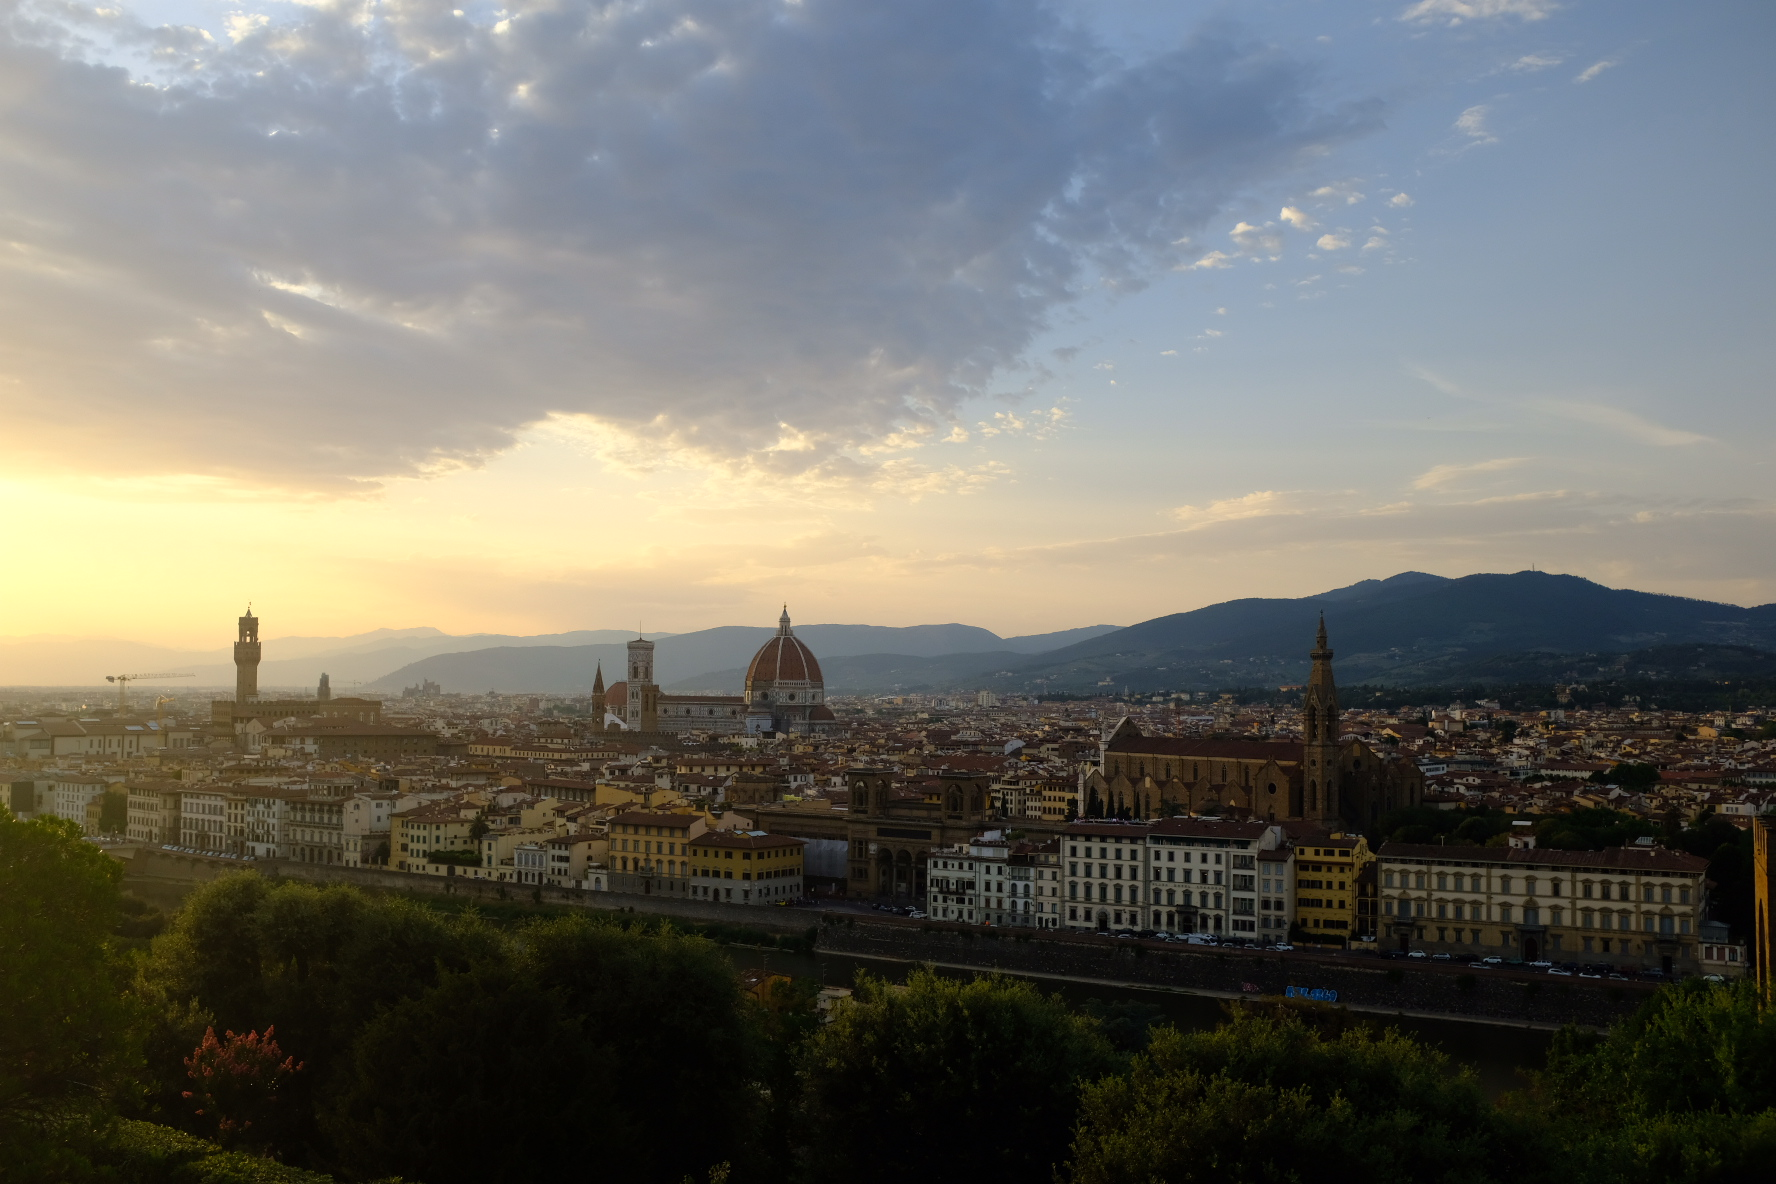 Sun setting over Florence from Piazzale Michelangelo.